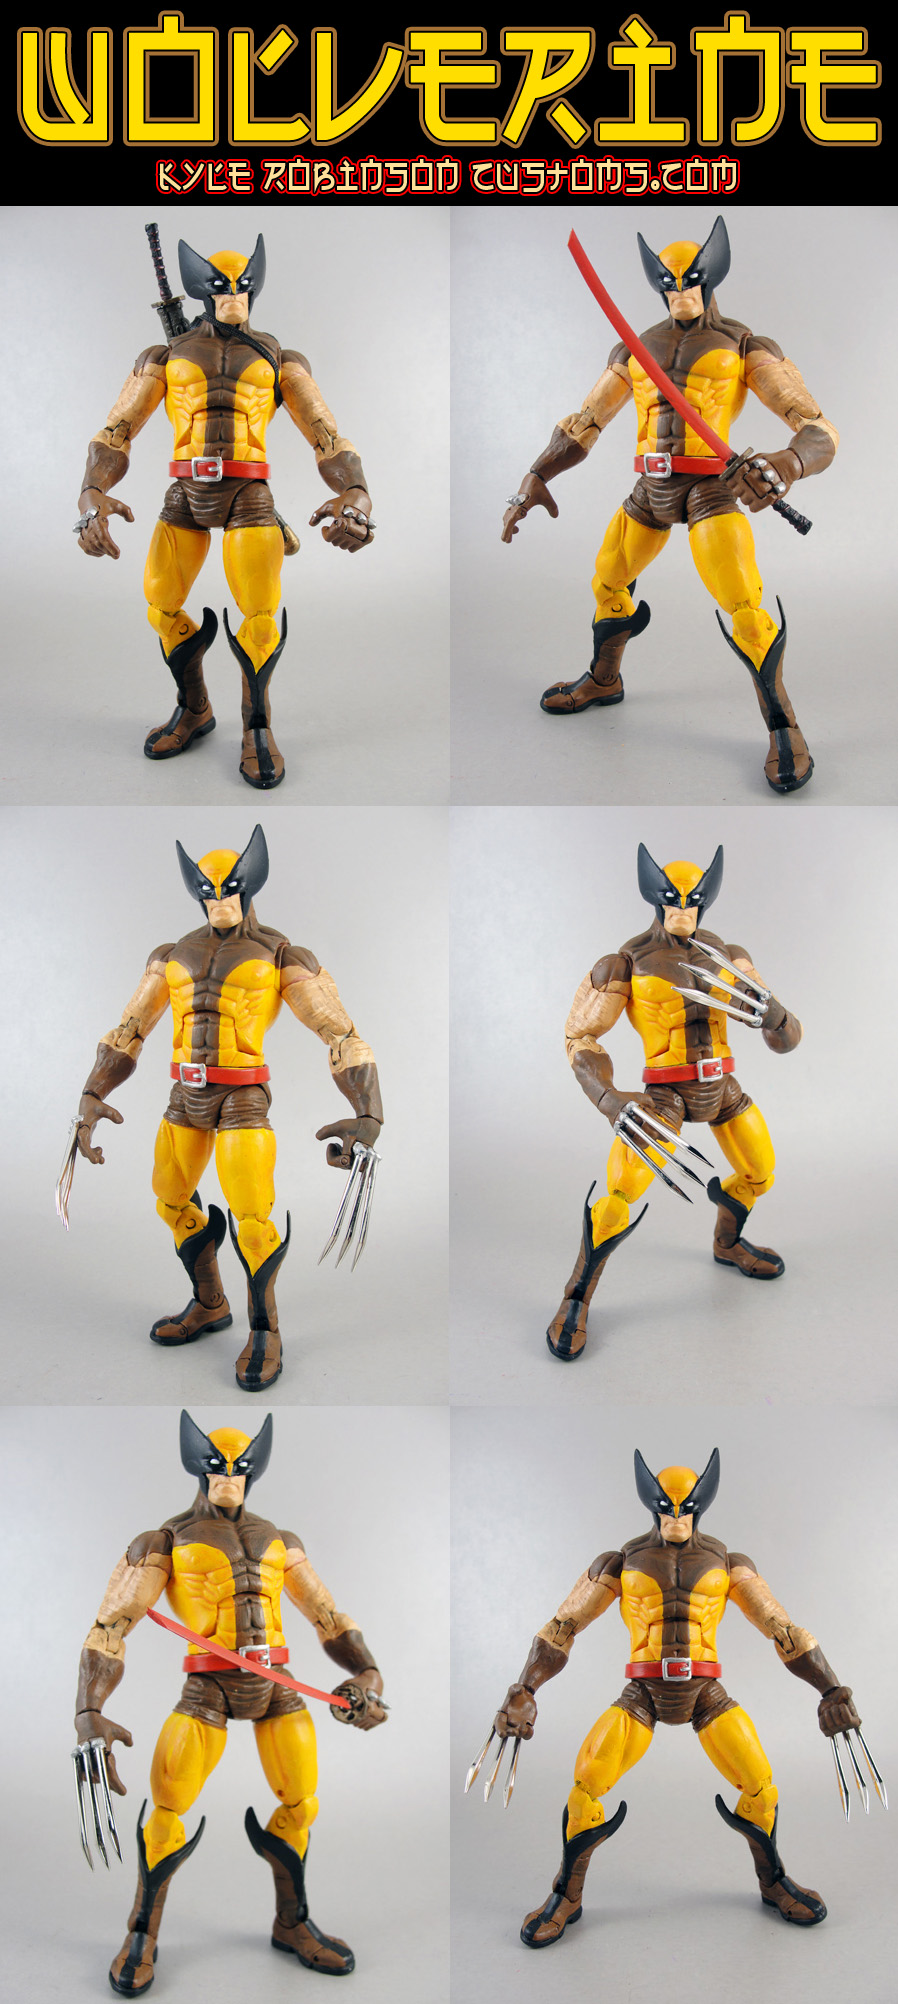 Custom Wolverine Brown Suit by KyleRobinsonCustoms